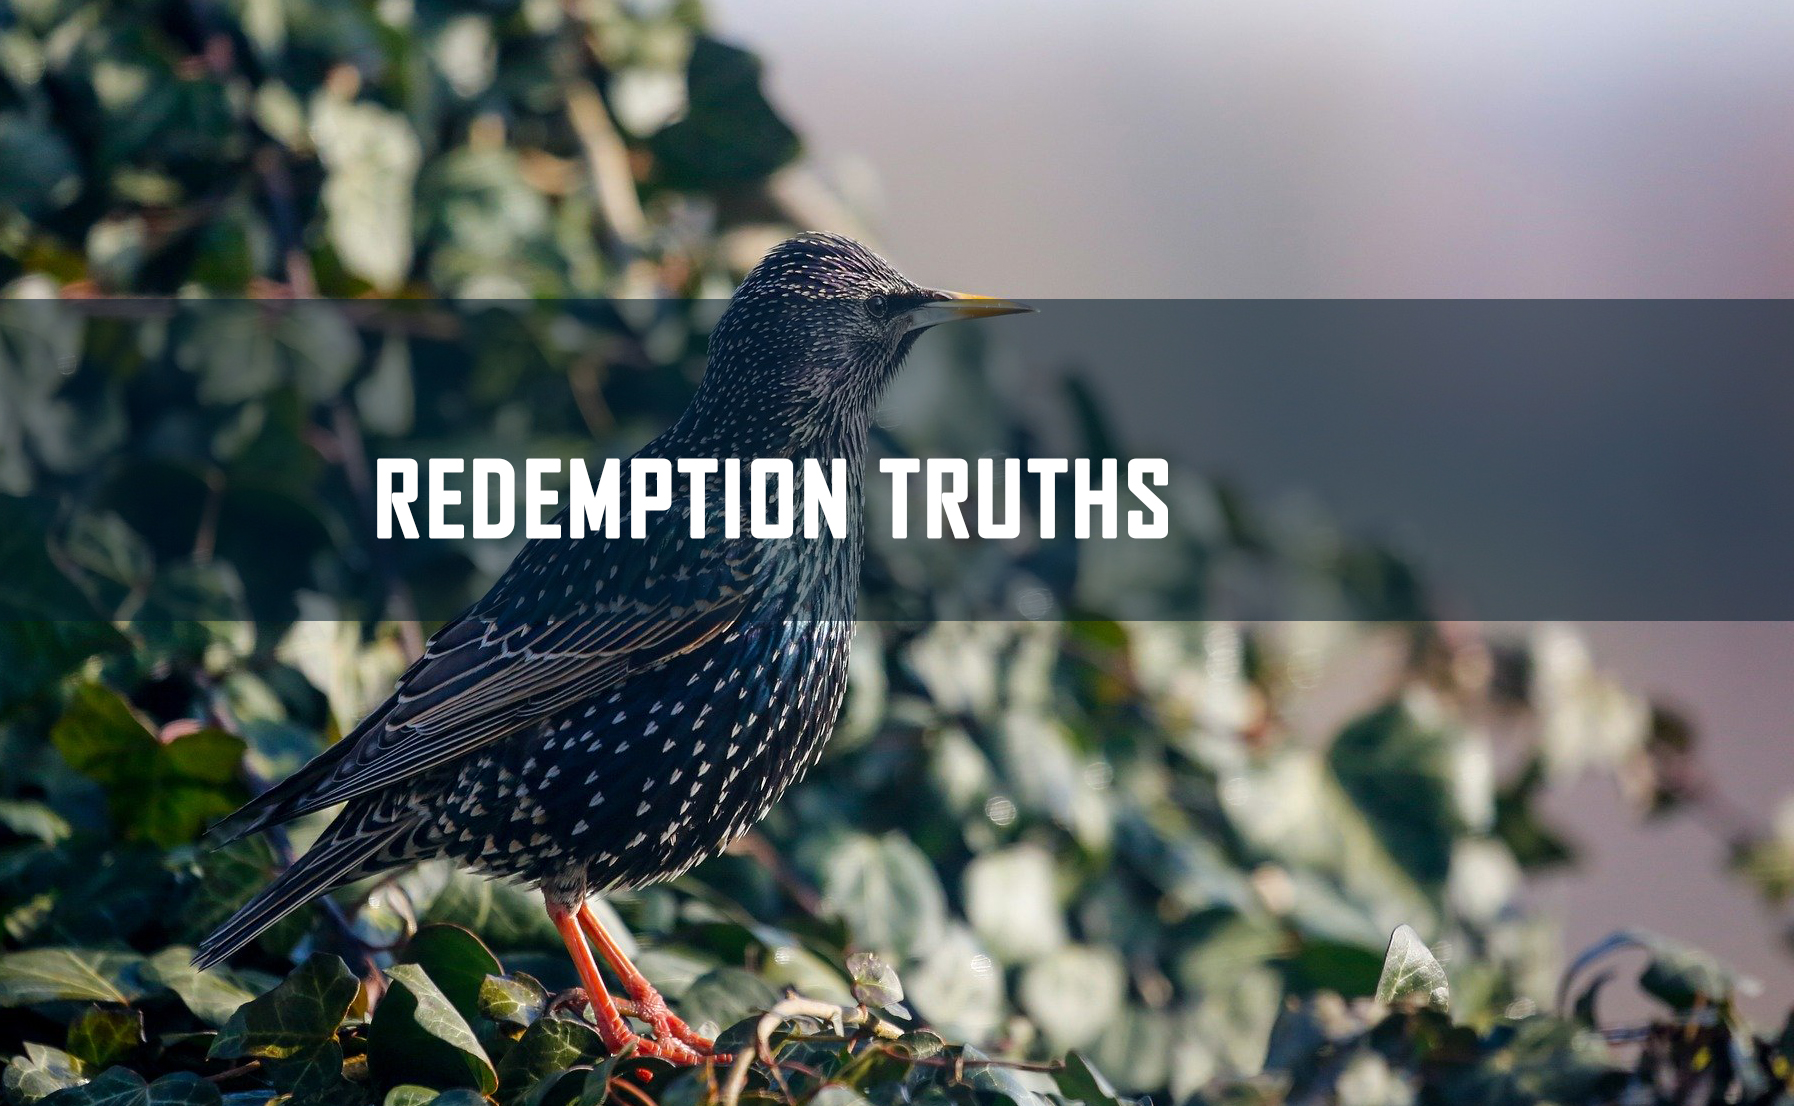 Redemption Truths <br/> Sujith M John